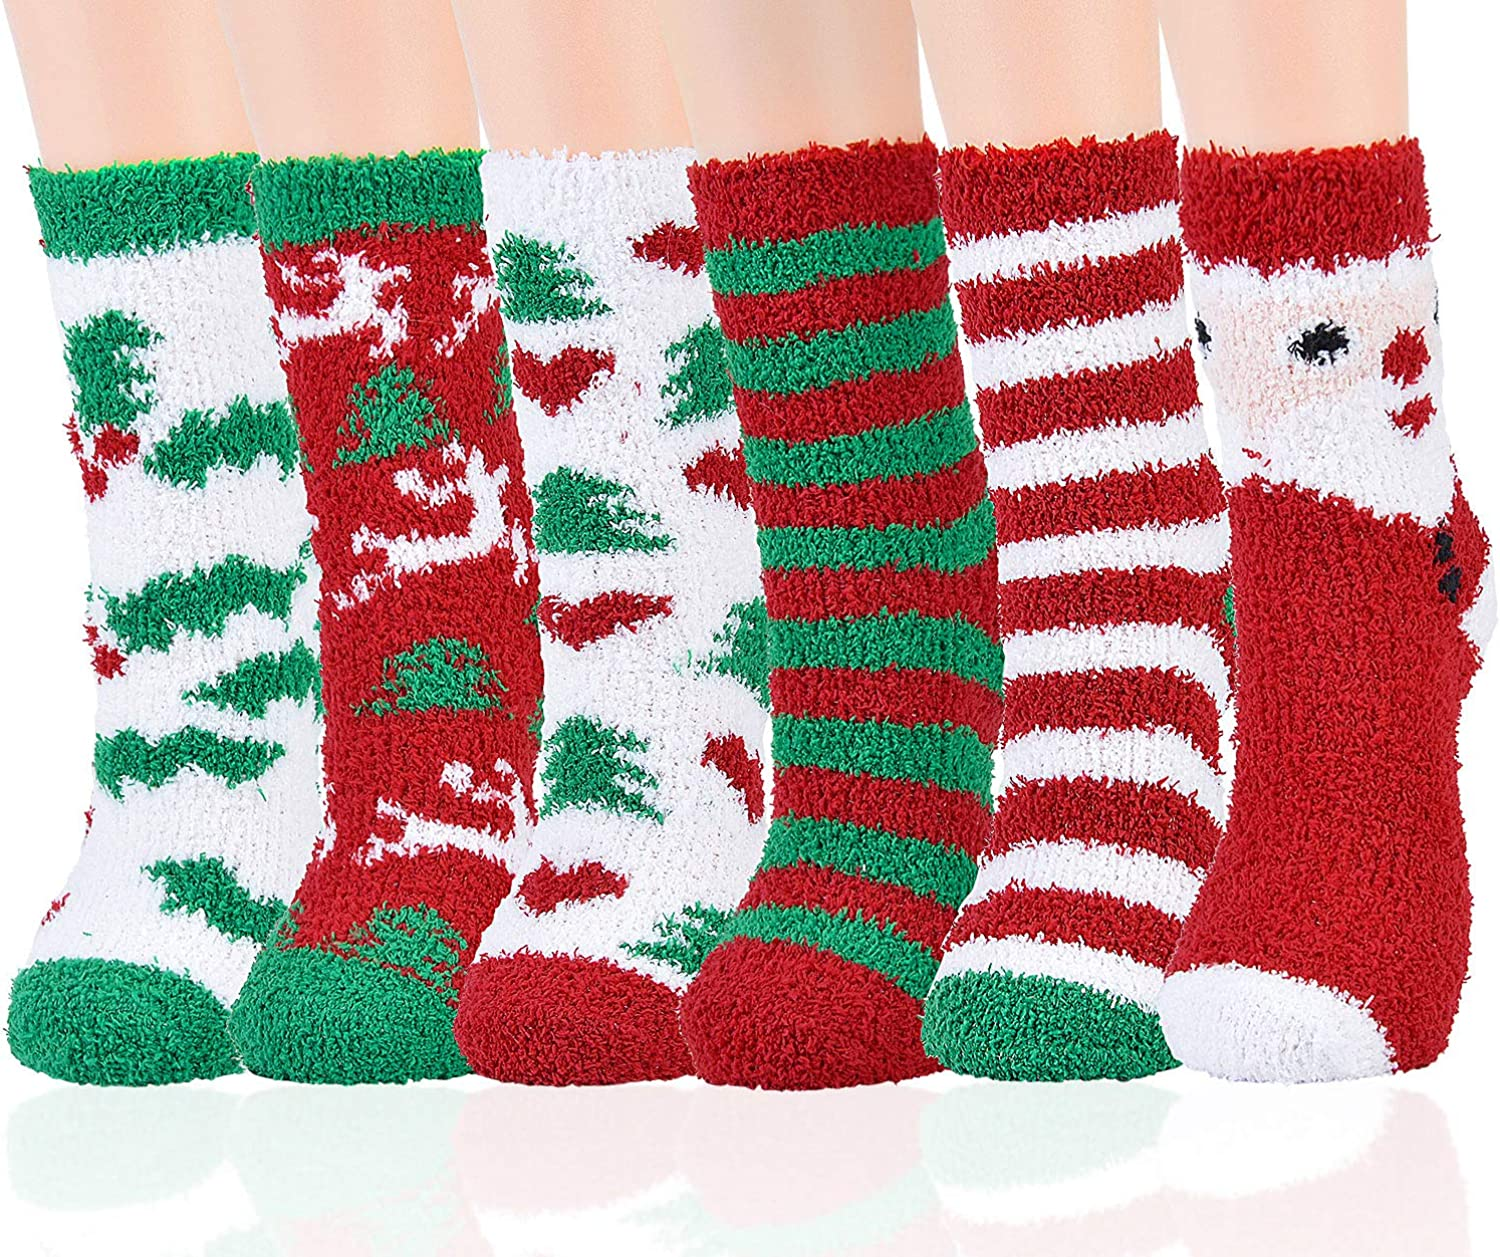 Max 56% OFF Many popular brands Aniwon Christmas Fuzzy Socks Sof Holiday 6 Pairs